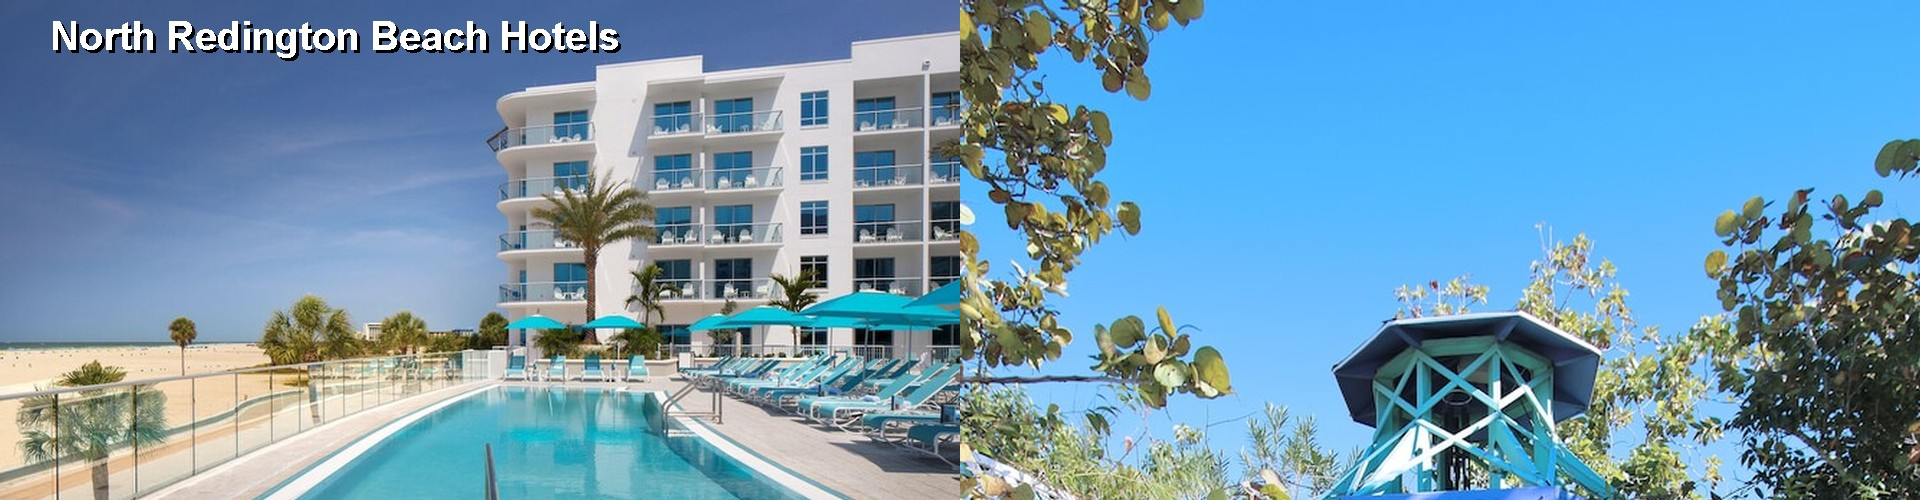 5 Best Hotels near North Redington Beach